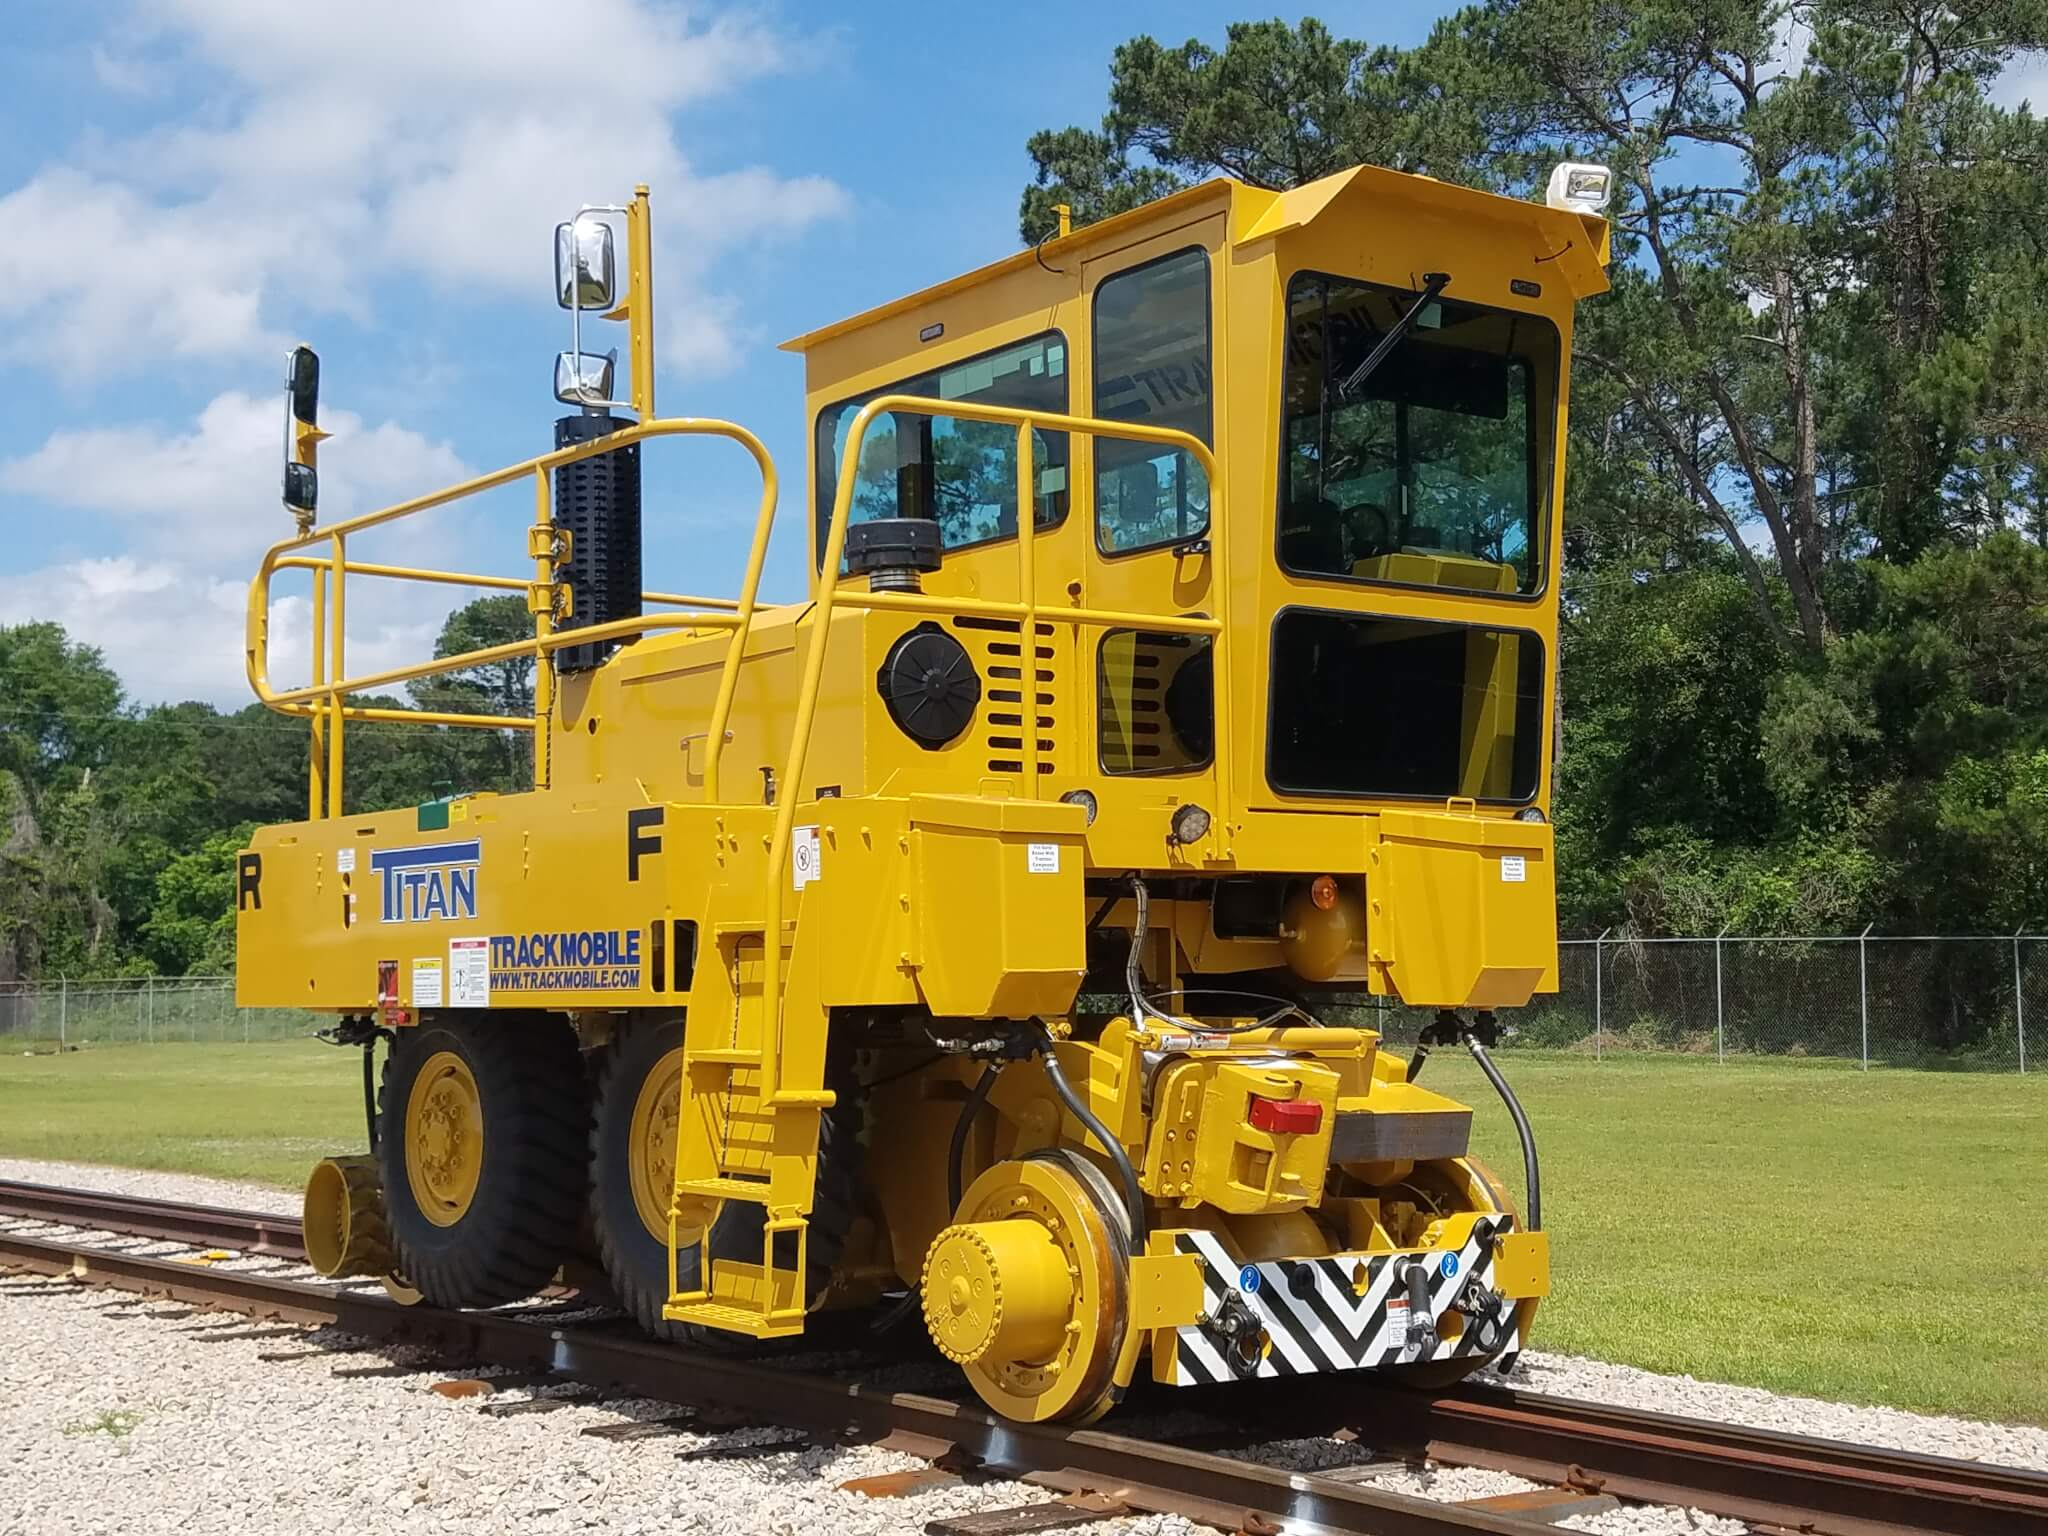 Titan – Trackmobile's highest capacity model